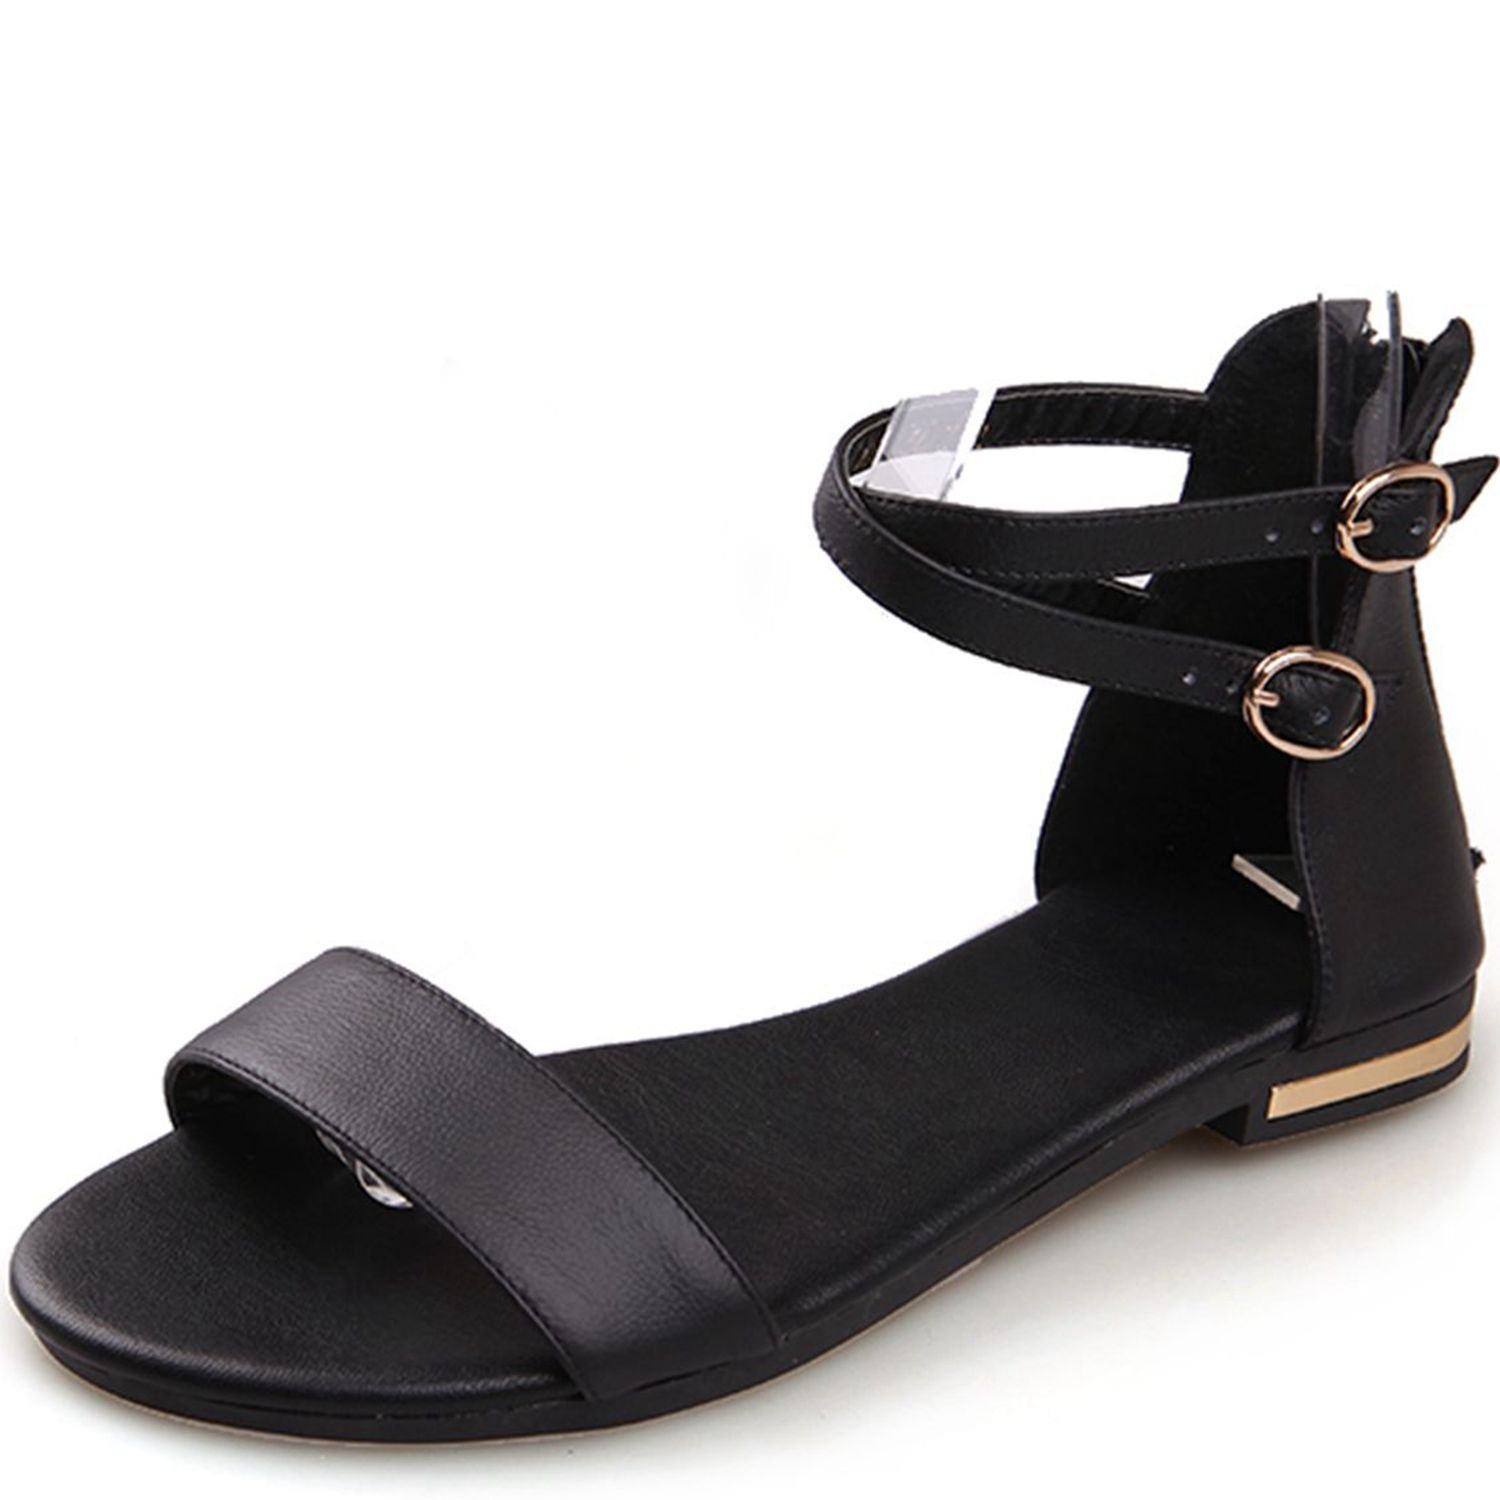 VIMISAOI Women's Leather Buckle Strap Summer Open Toe Ankle Strap Zip Casual Flat Sandals Shoes B0794ZSVNP 9 B(M) US|Black